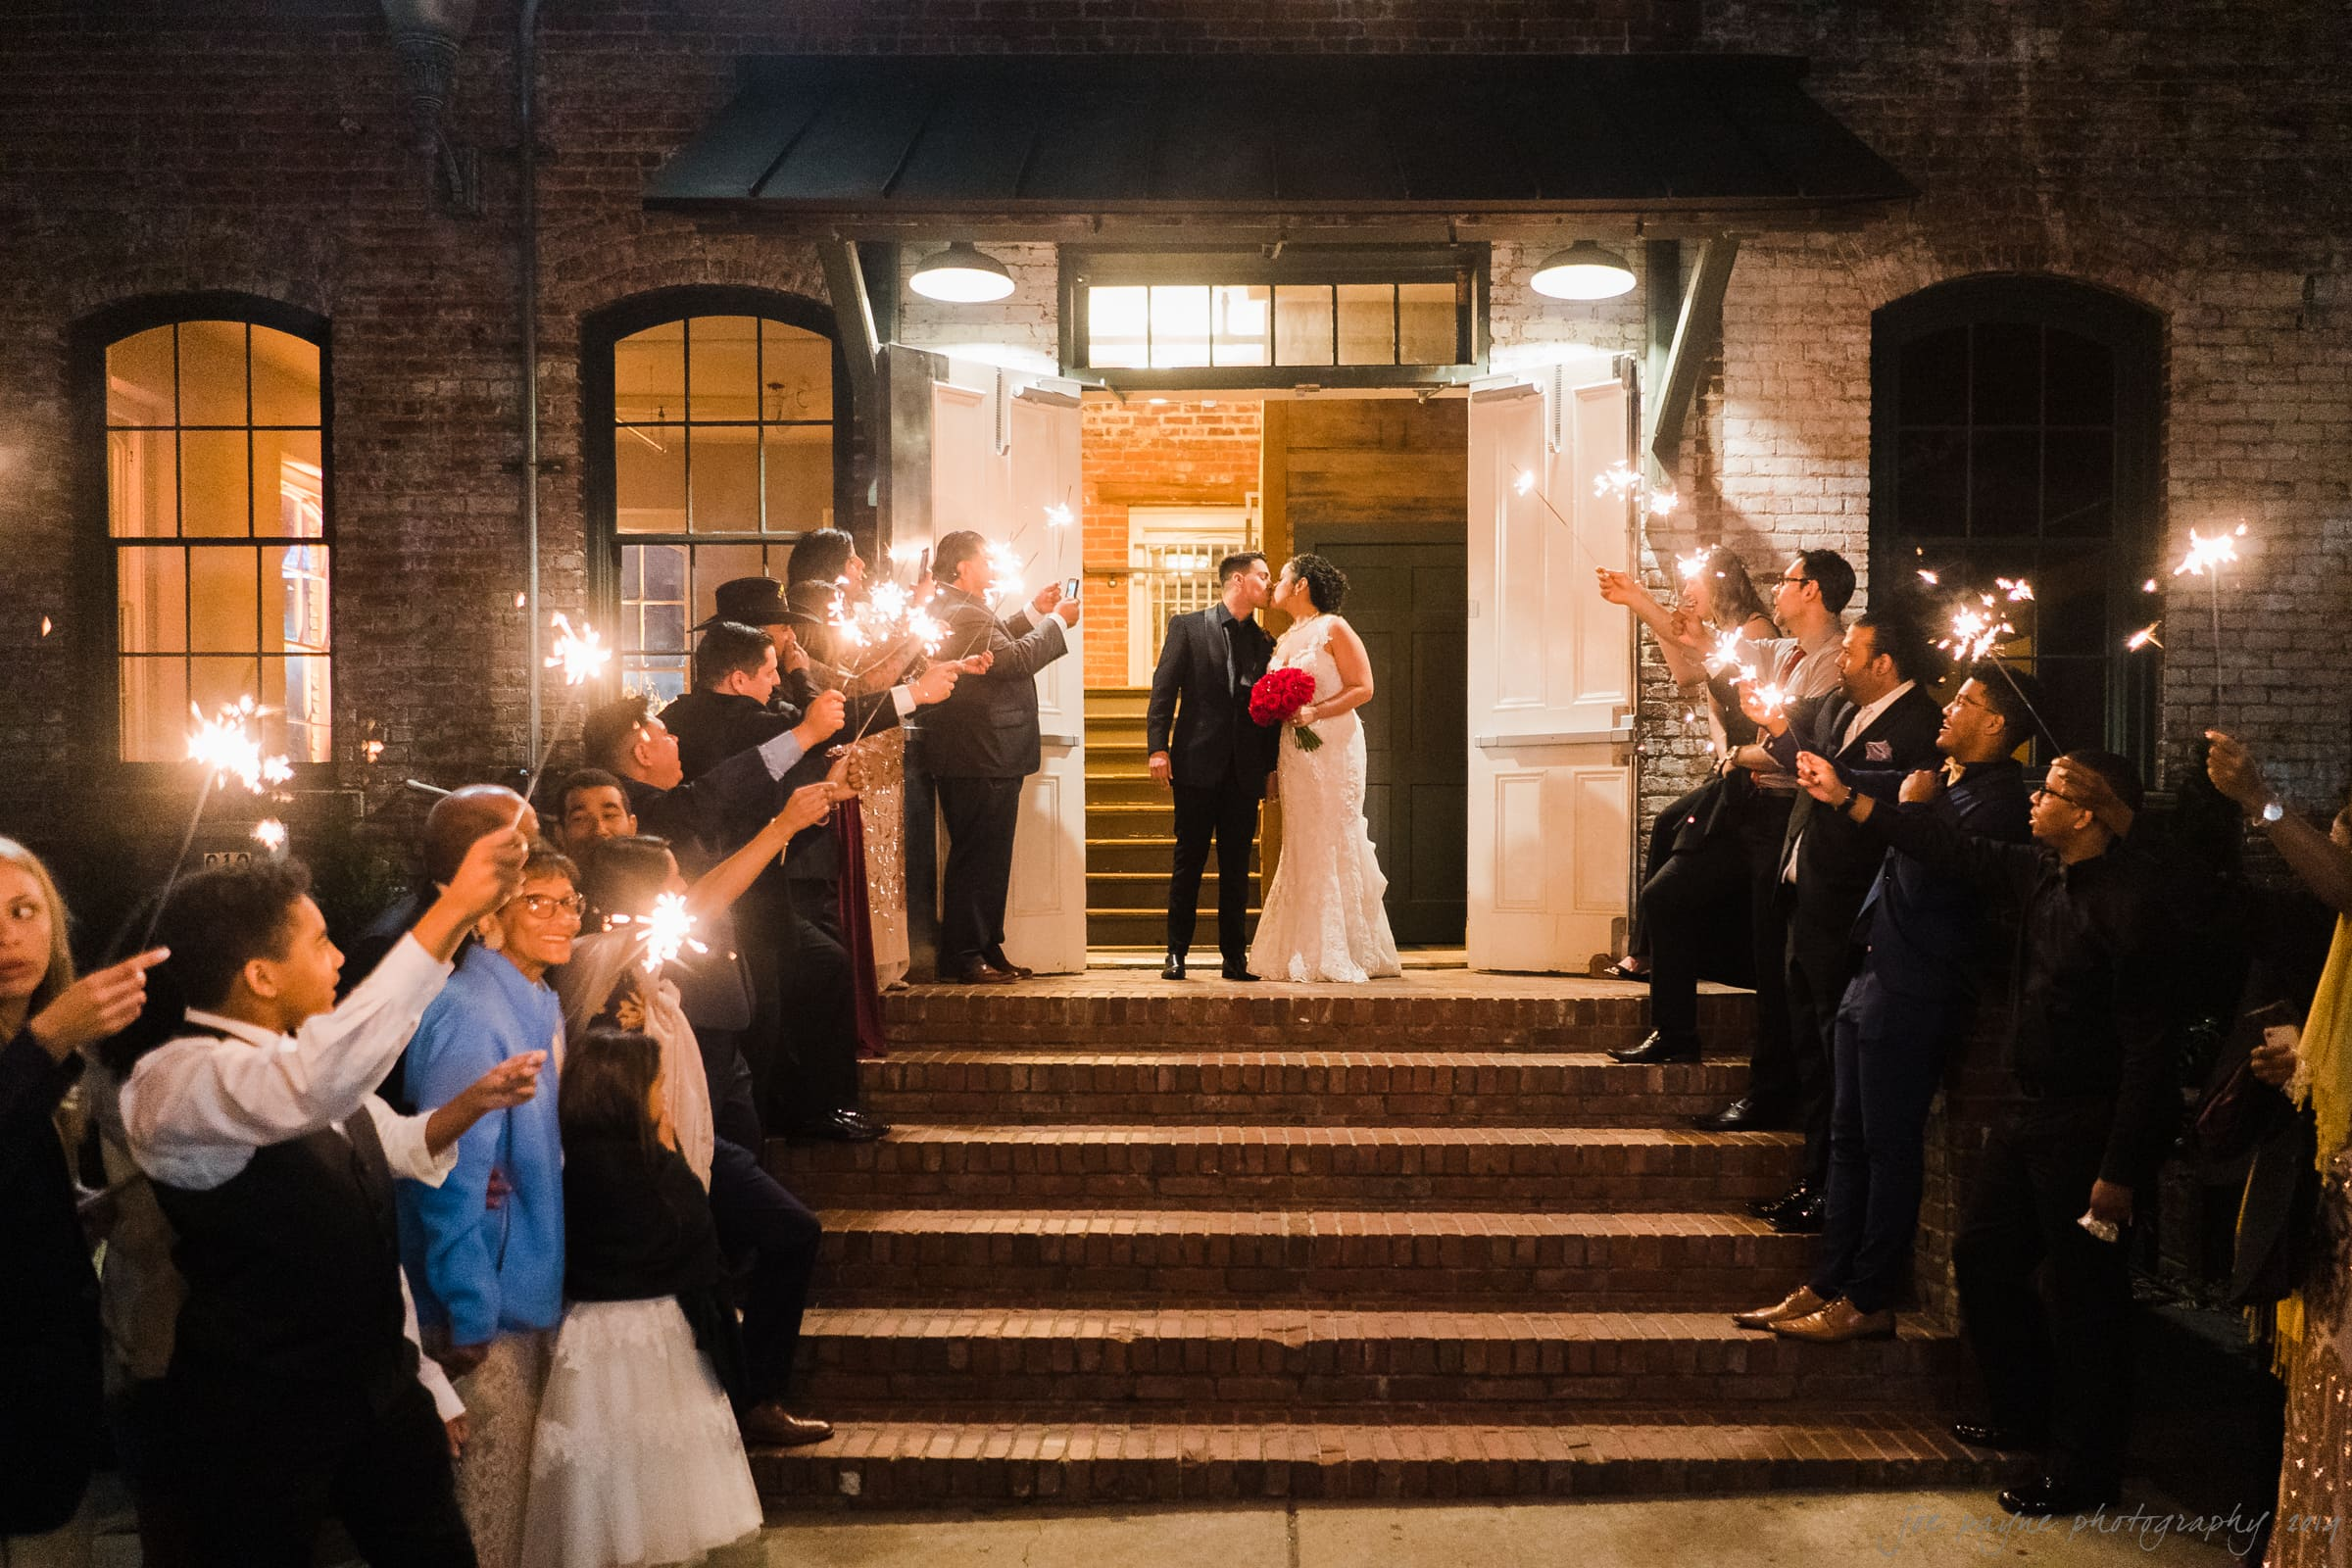 melrose knitting mill raleigh wedding photographer melanie anthony 63